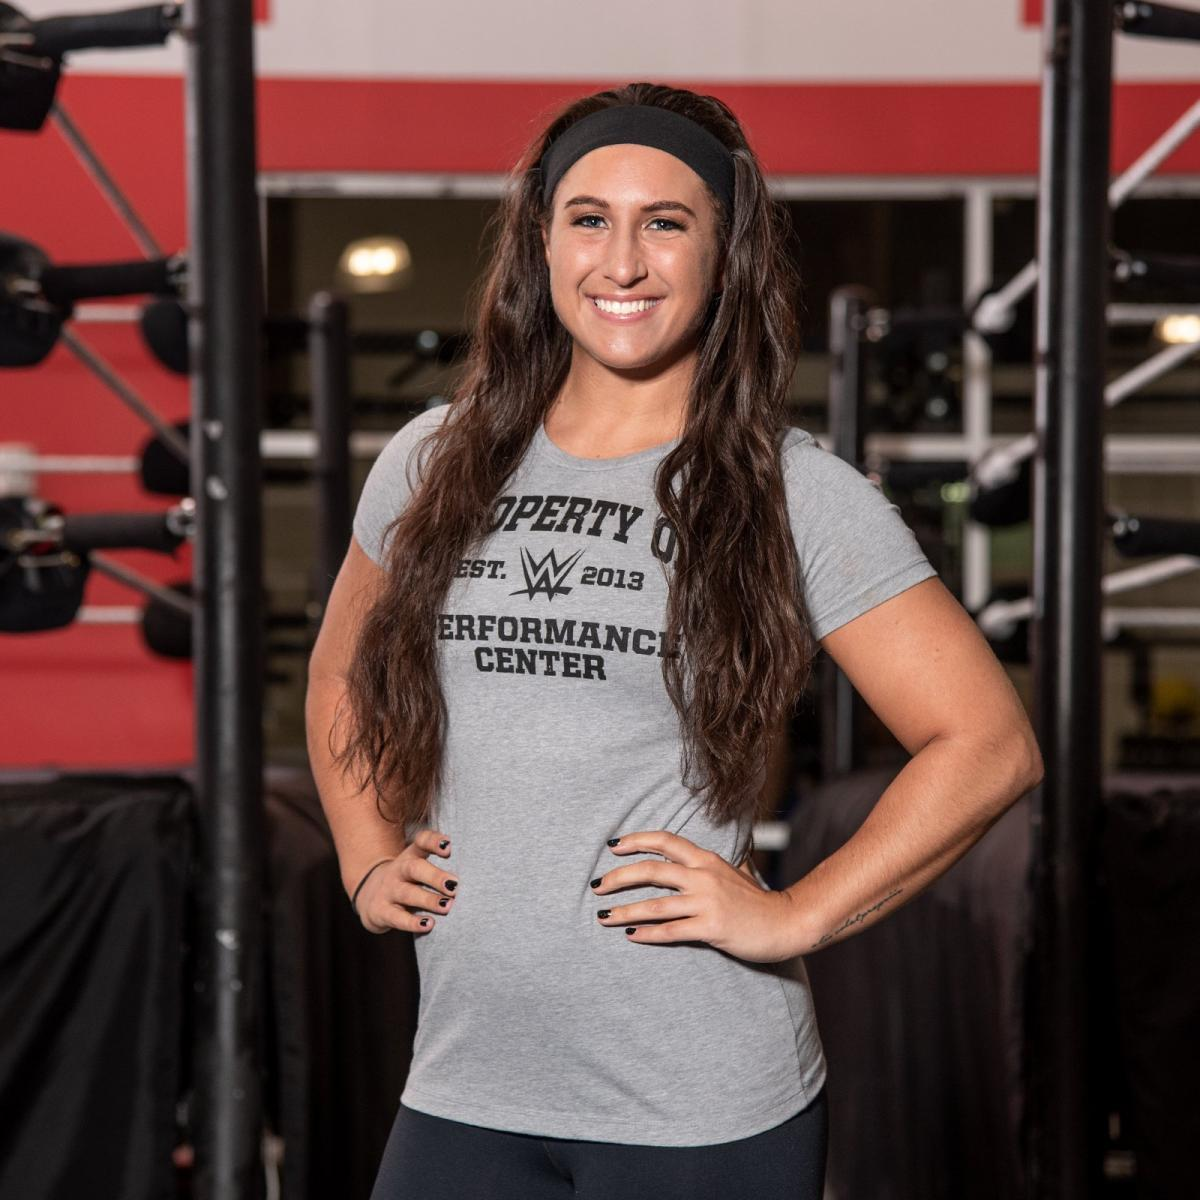 WWE fans will recognize Rachael Ellering, the daughter of WWE Hall of Famer Paul Ellering, from her appearances in the Mae Young Classic.